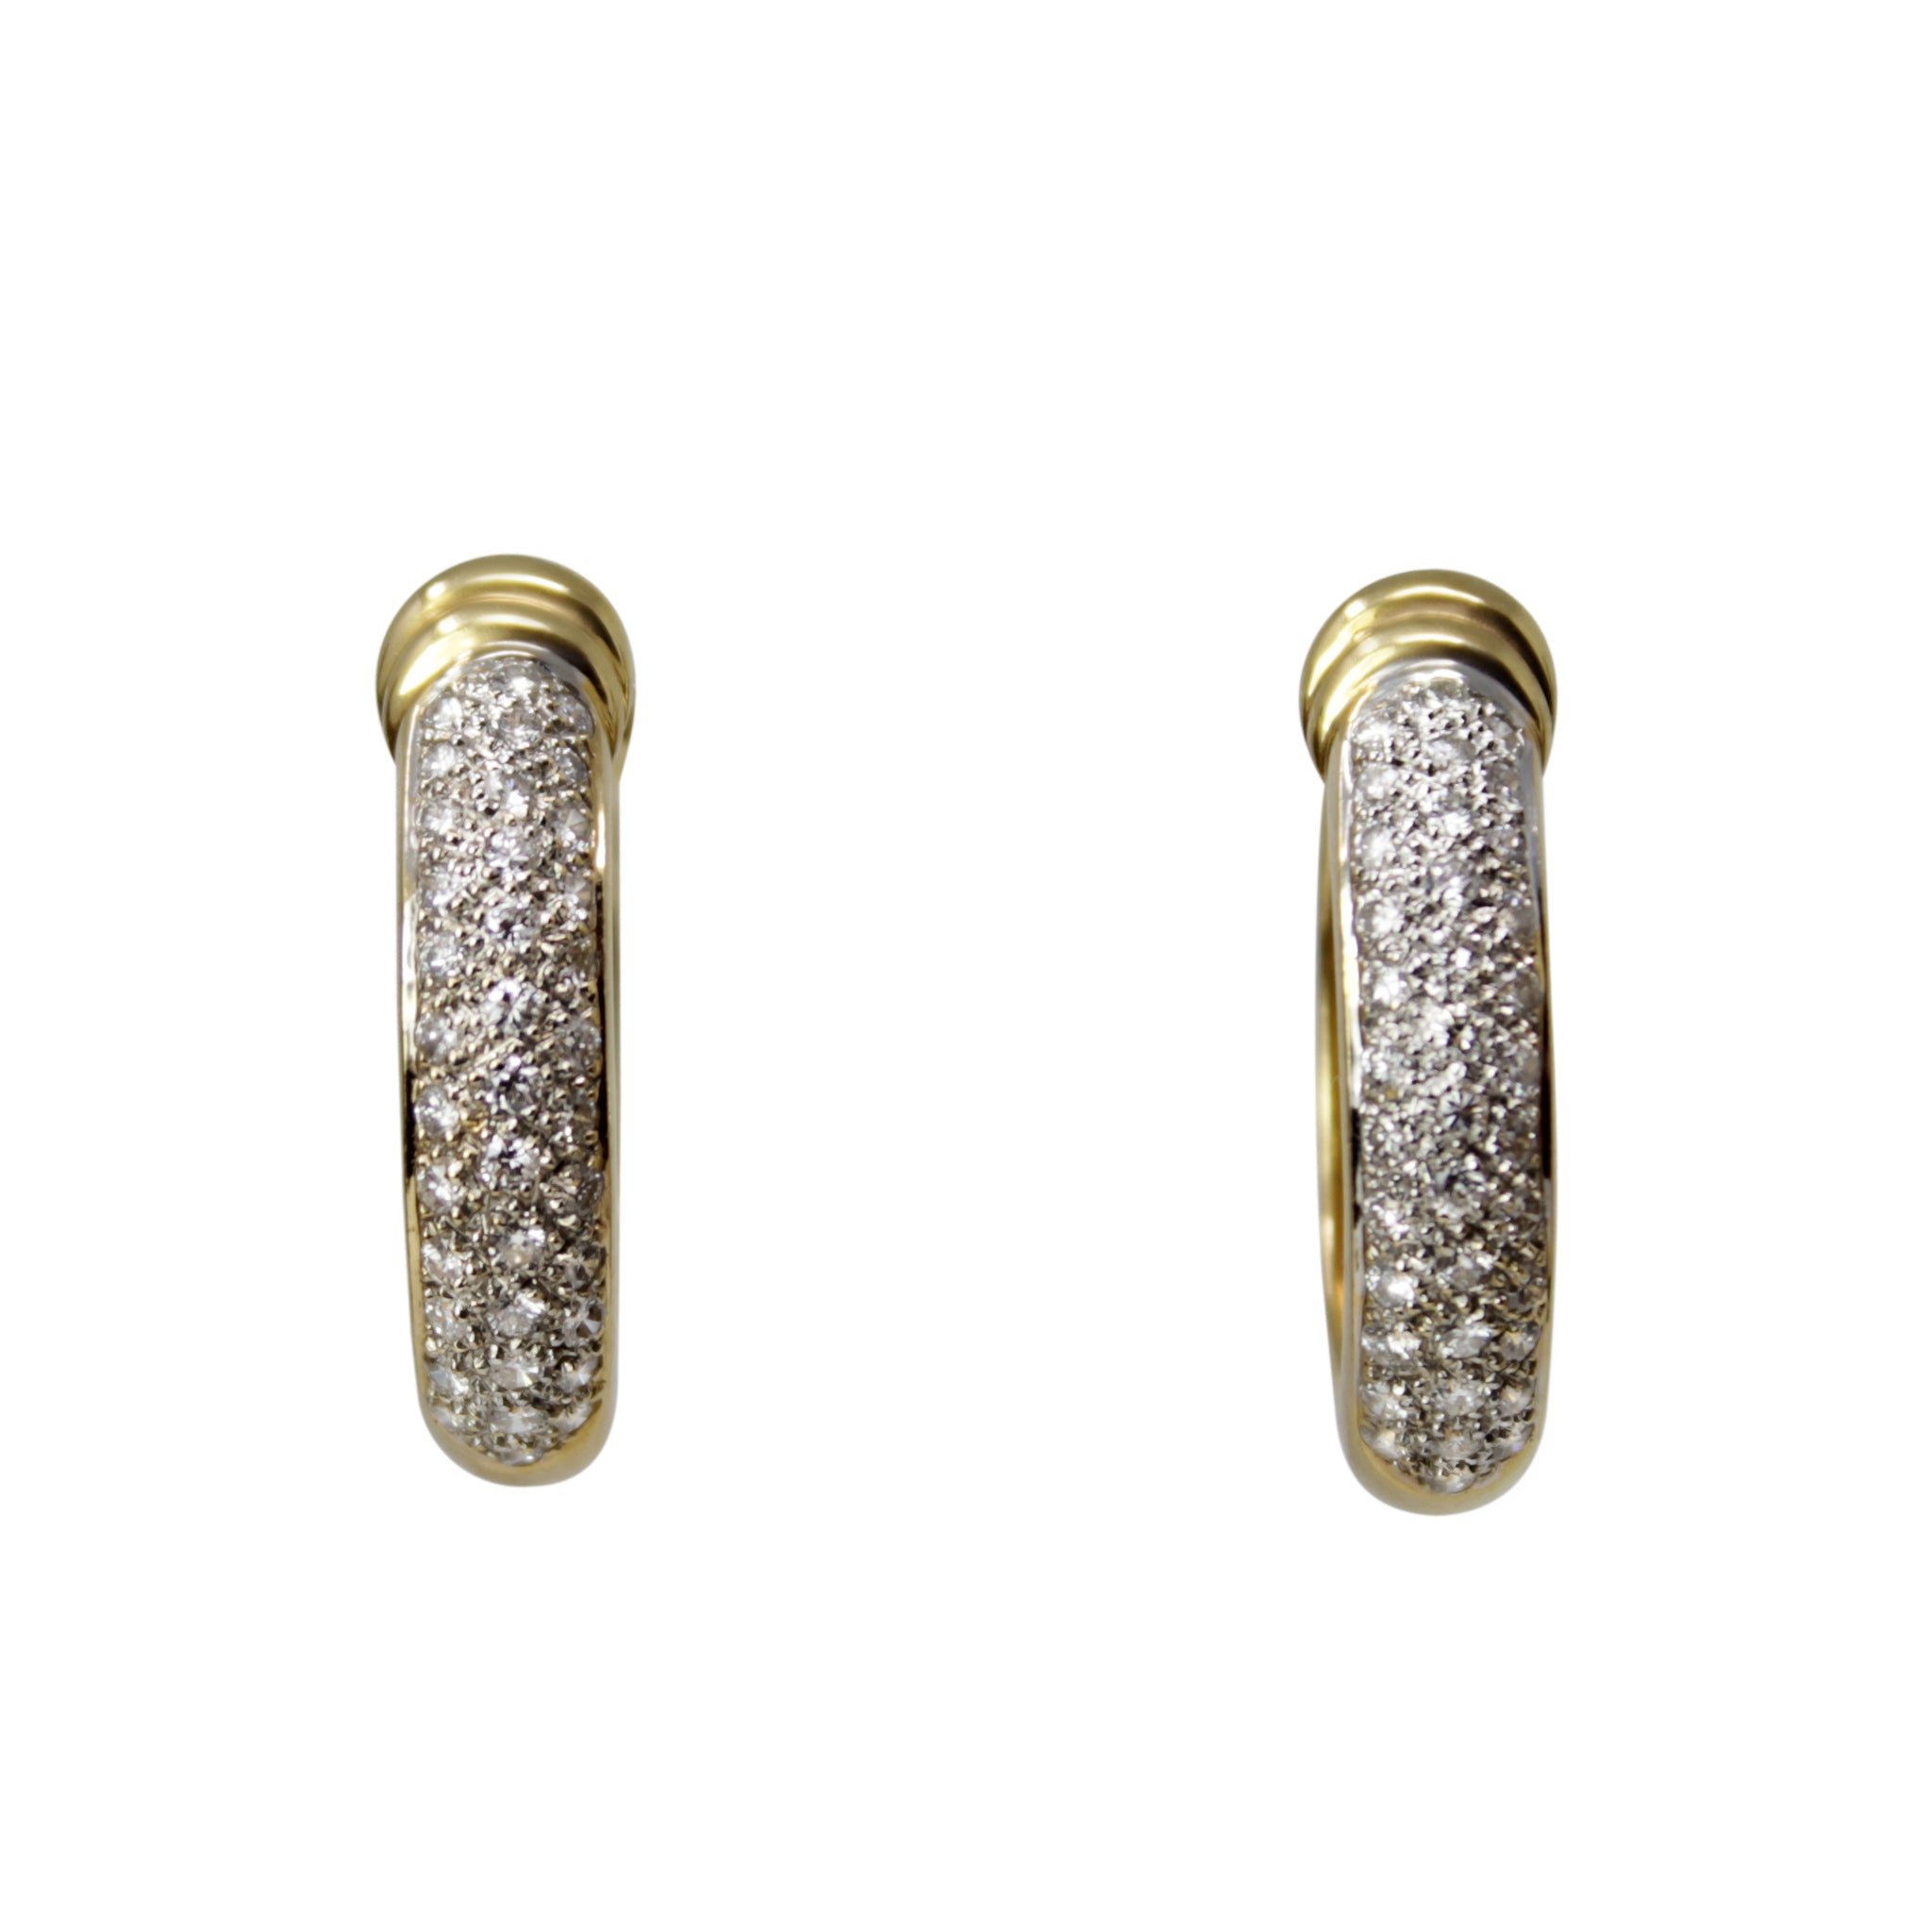 Grace Kelly Diamond Hoop Earrings - 18K Yellow Gold Diamond Small Hoop Earrings